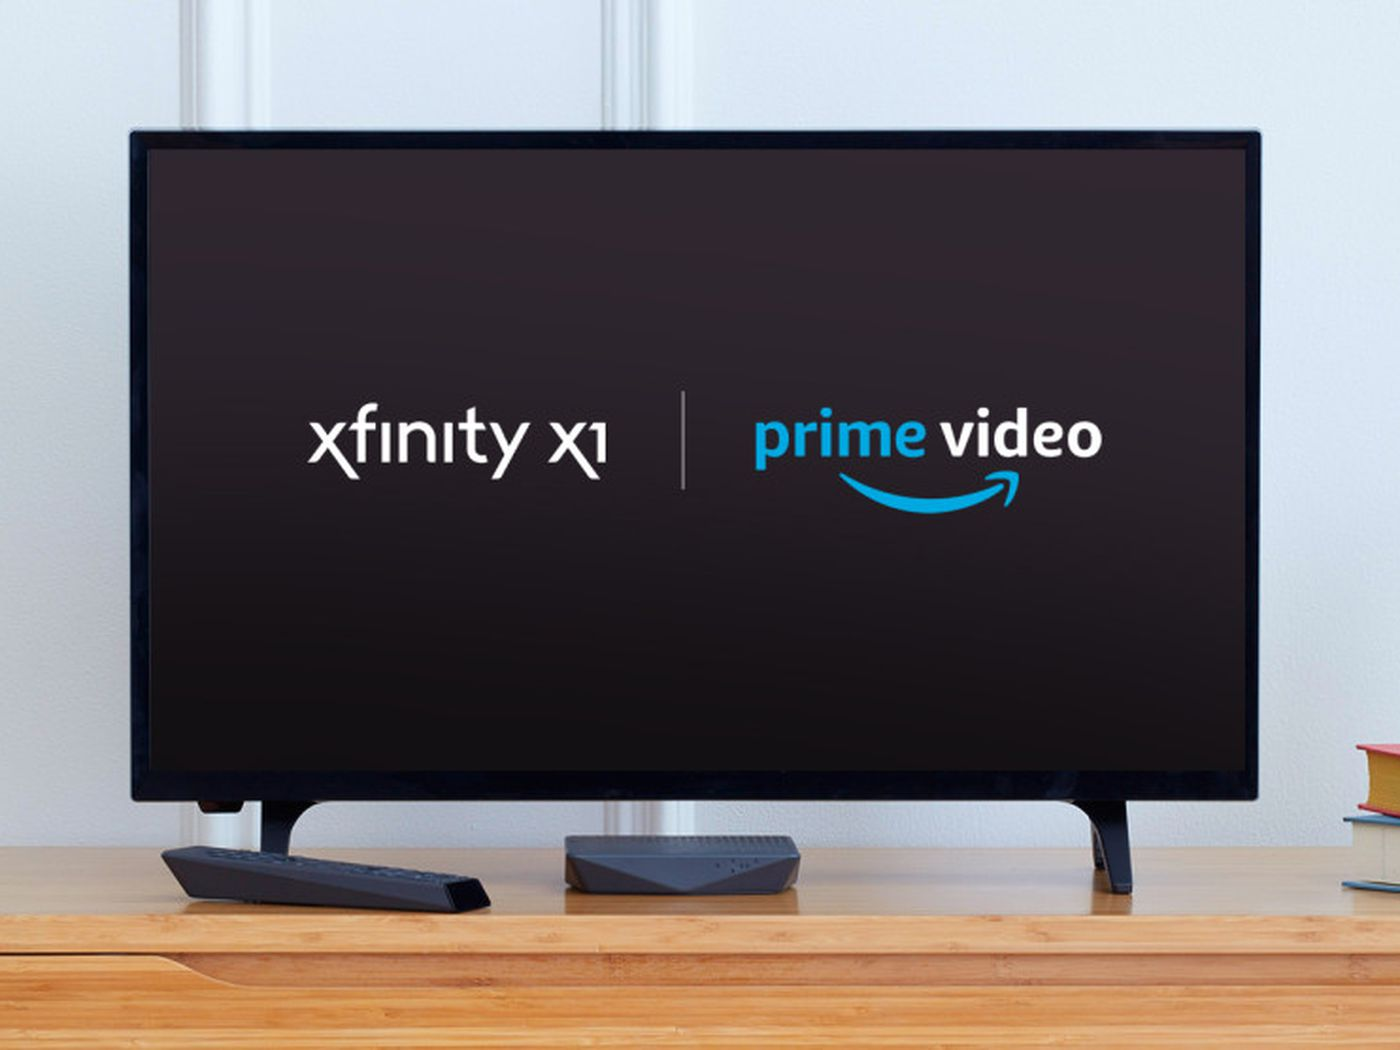 Amazon Prime Video is now available on Comcast Xfinity X1